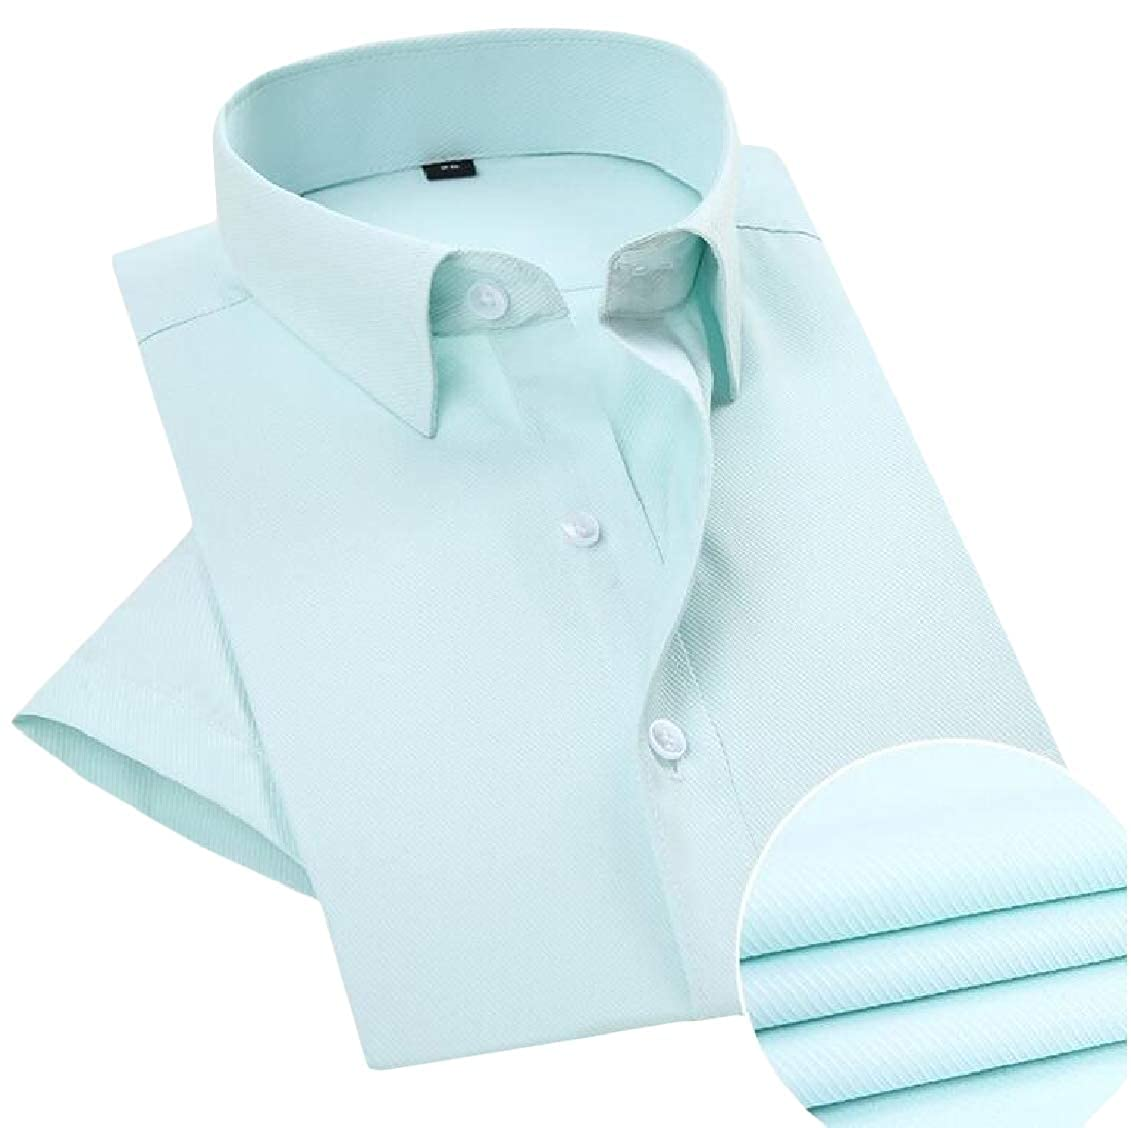 Sweatwater Mens Work Short Sleeve Office Reg-Size Cozy Shirts